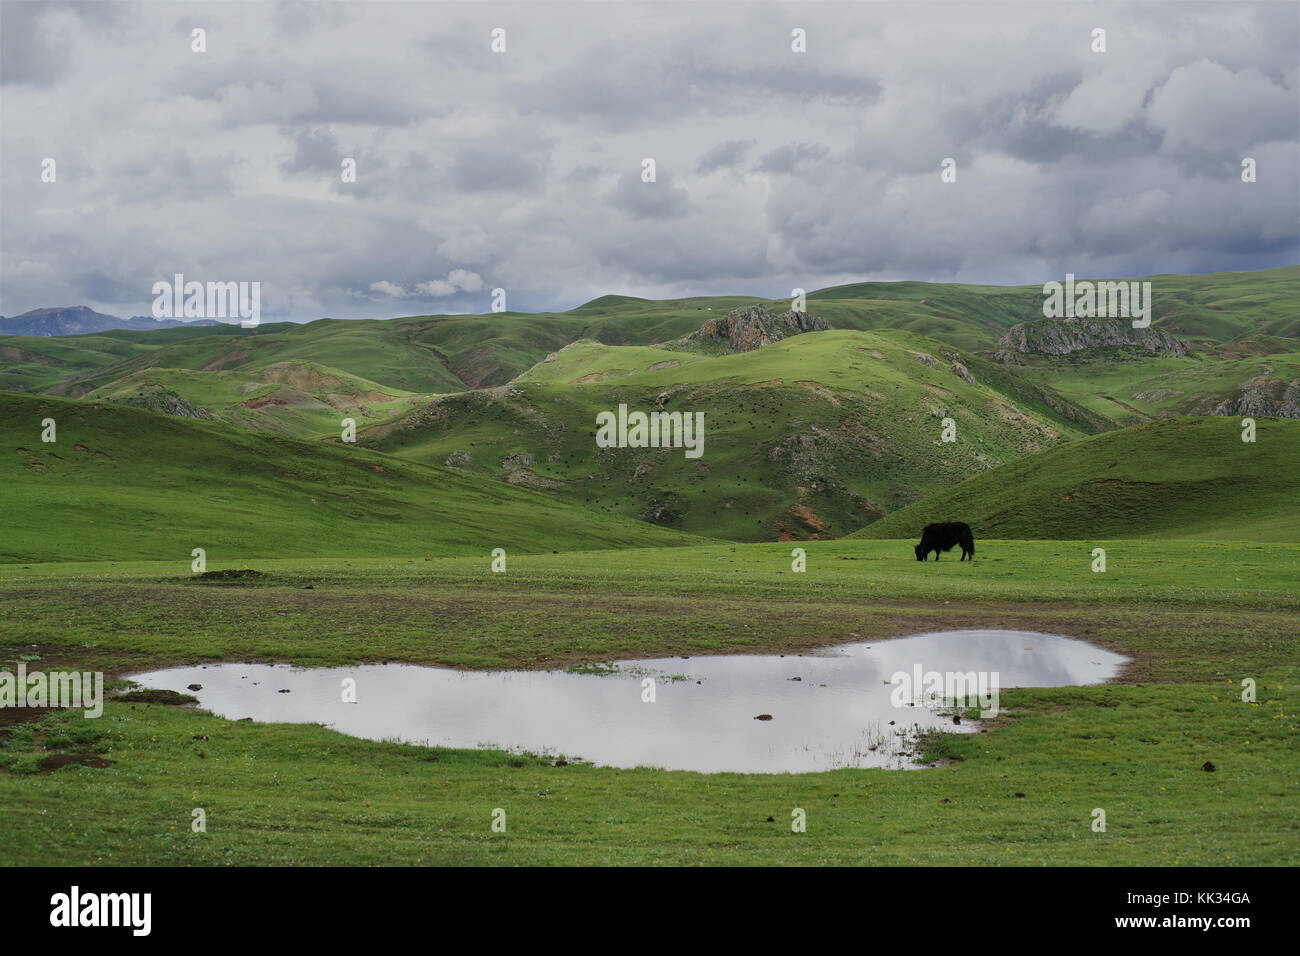 Yak on grassland, Litang, Kham (Tibetan region), China - Stock Image